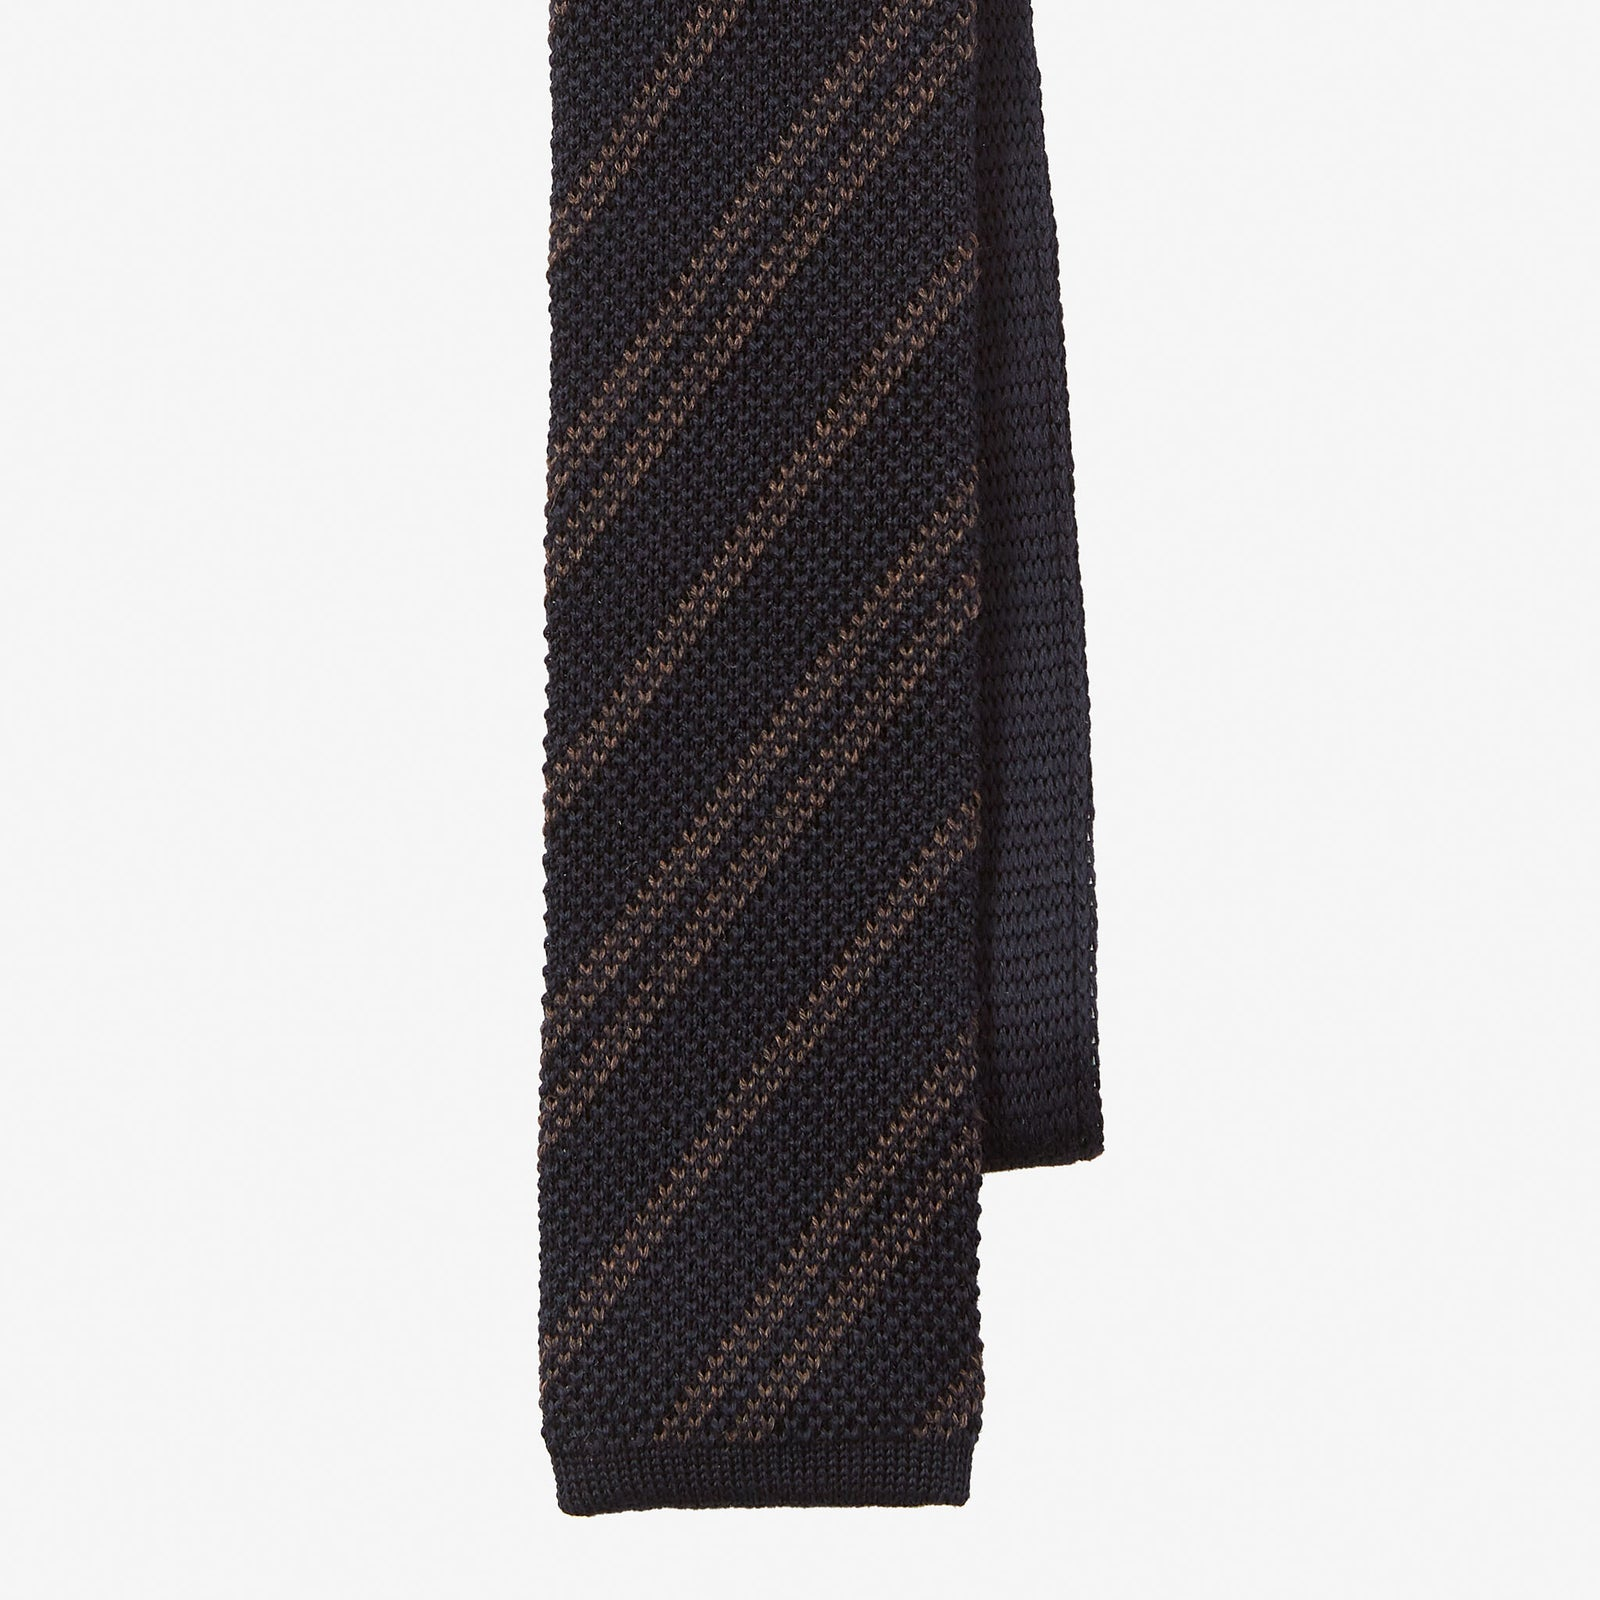 Knit Tie Wool Stripe Navy Brown